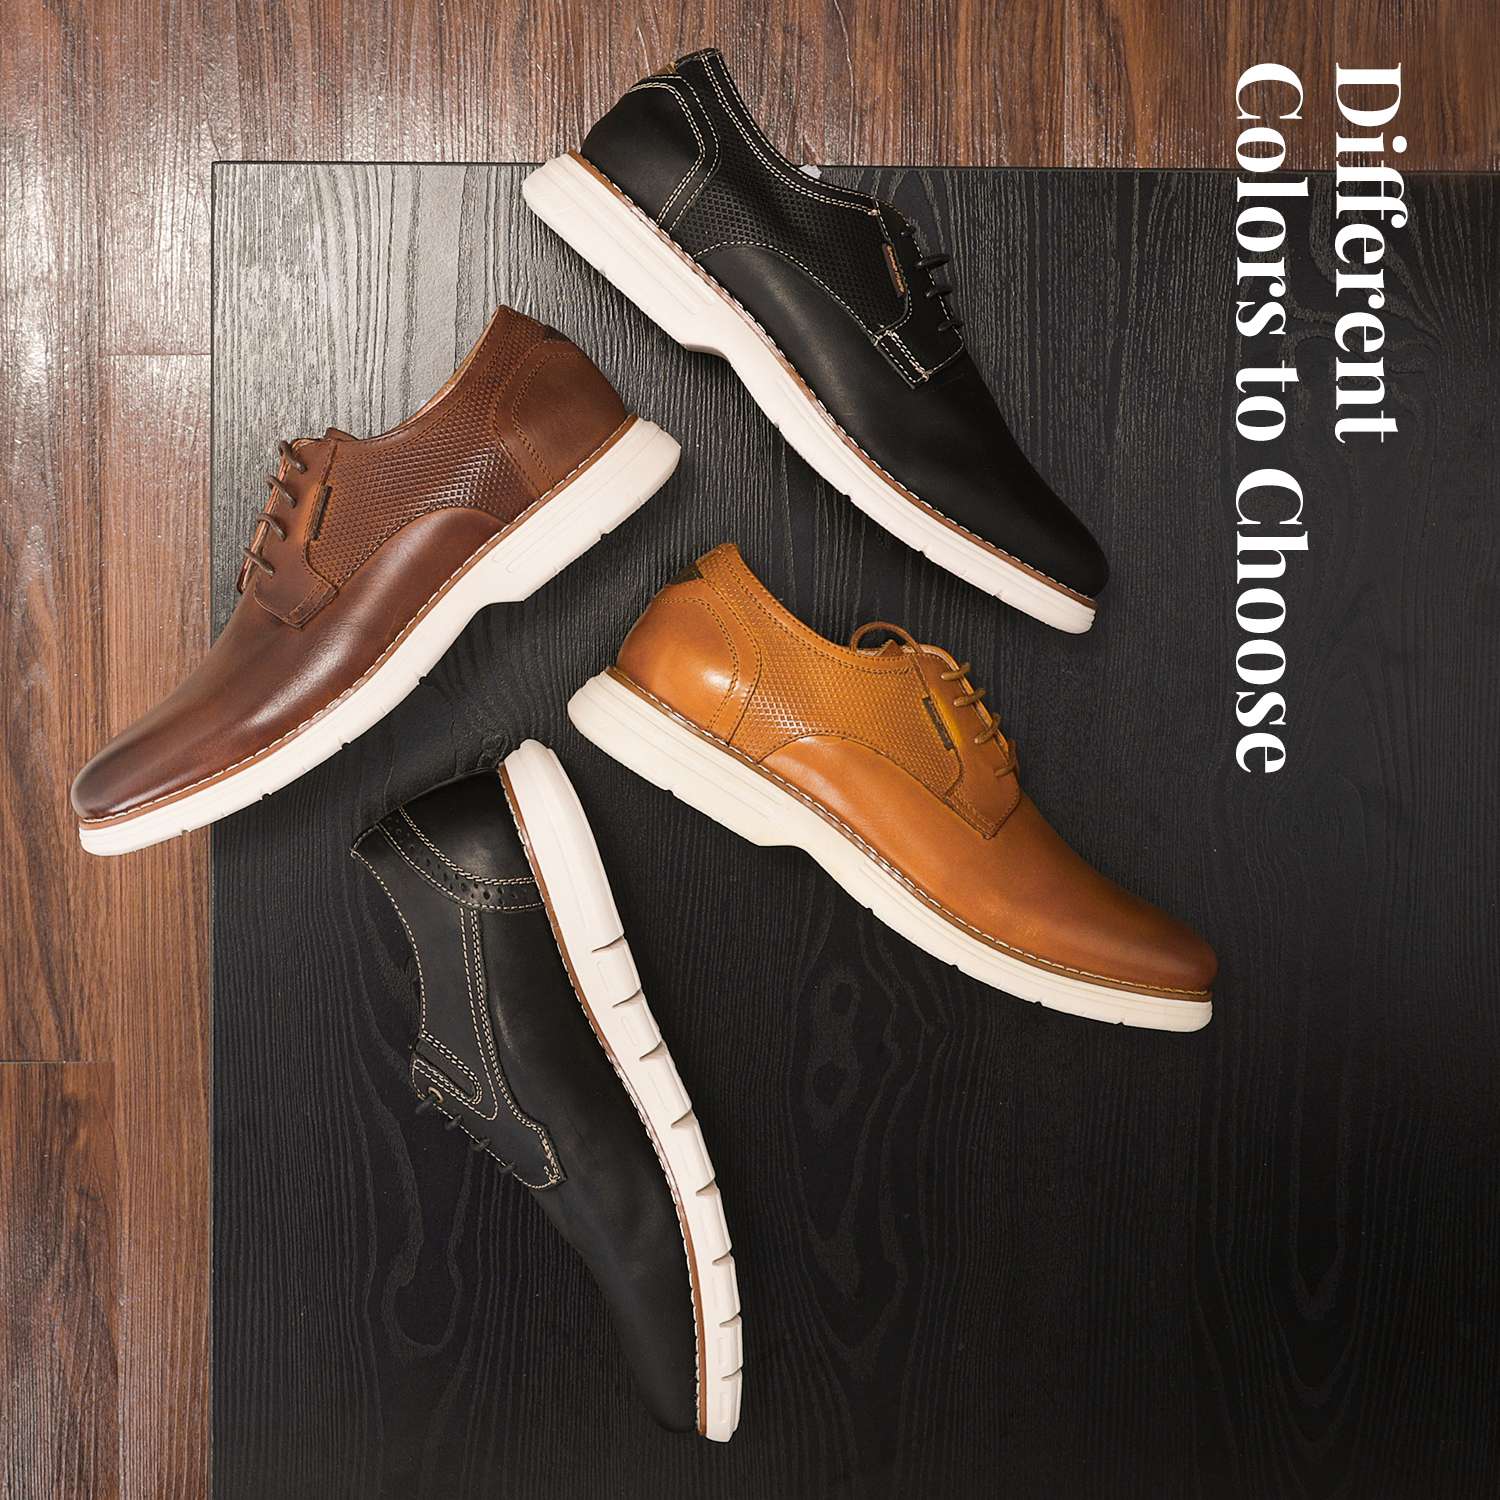 Mens-Fashion-Genuine-Leather-Business-Dress-Sneakers-Casual-Lace-up-Oxford-Shoe thumbnail 16